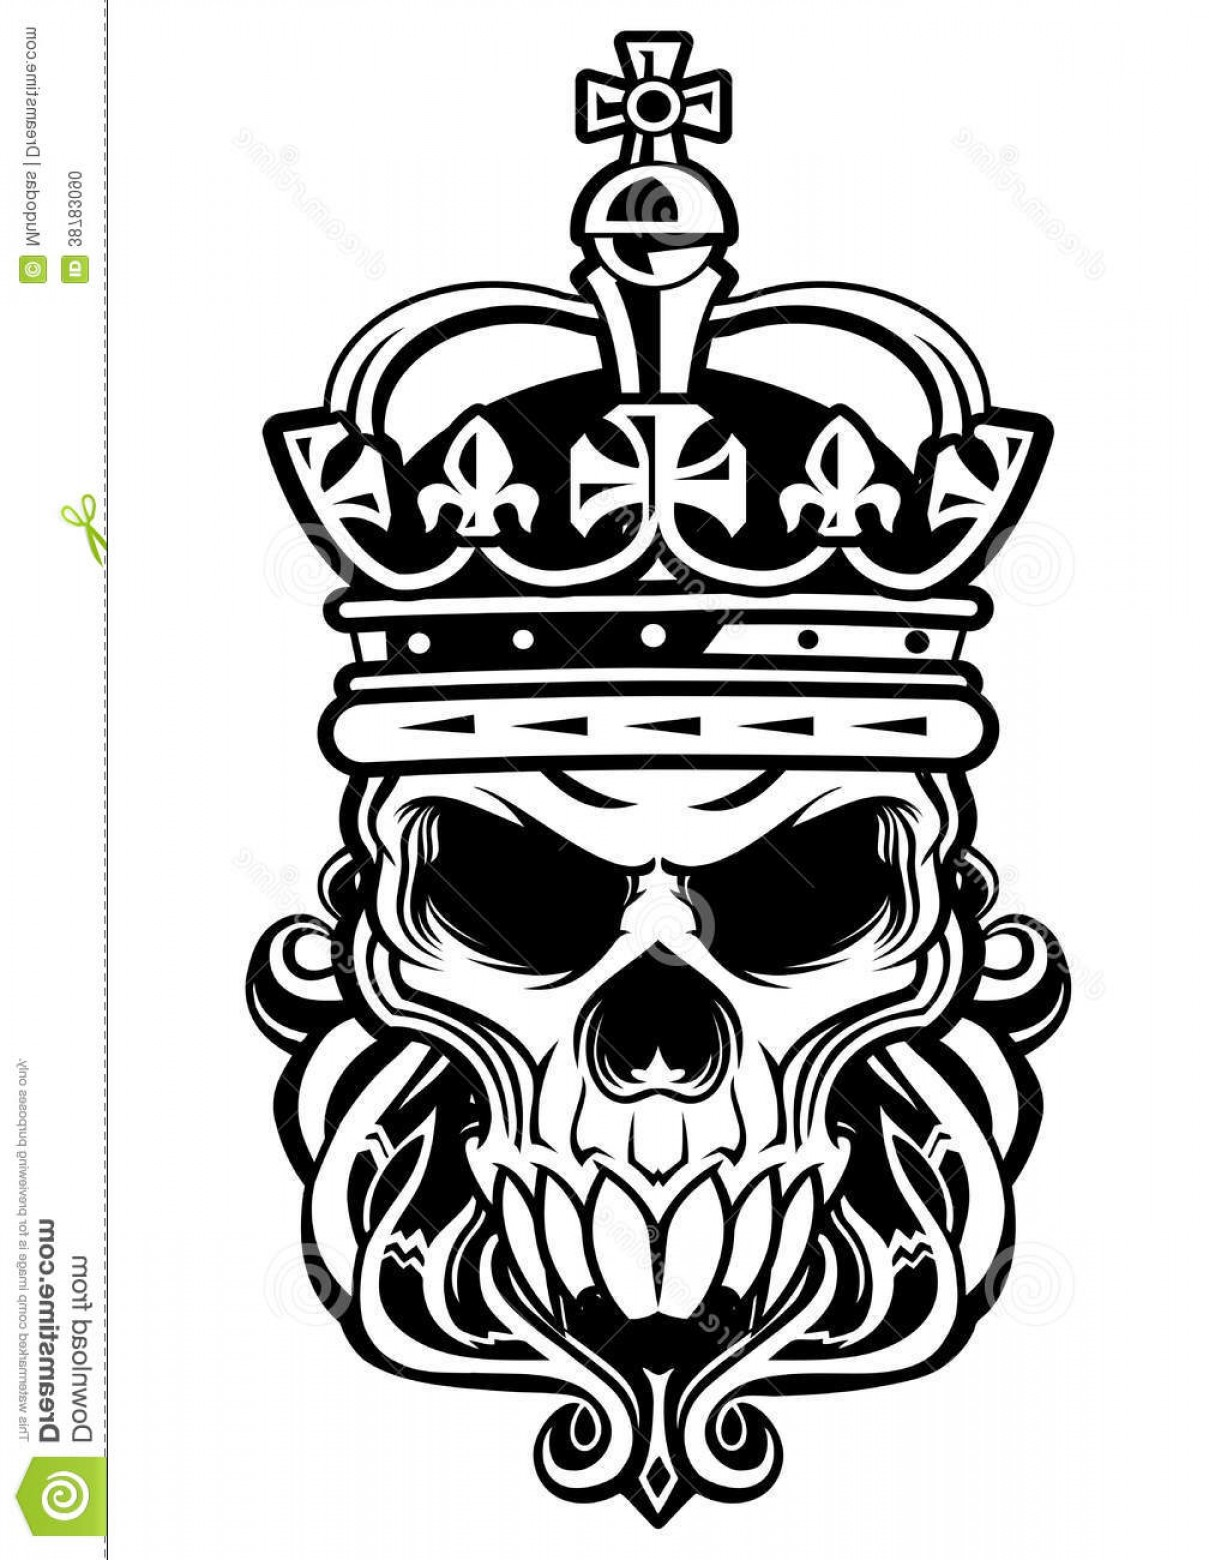 His And Hers Skulls Vector: Stock Photo Skull King Crown Beard Image